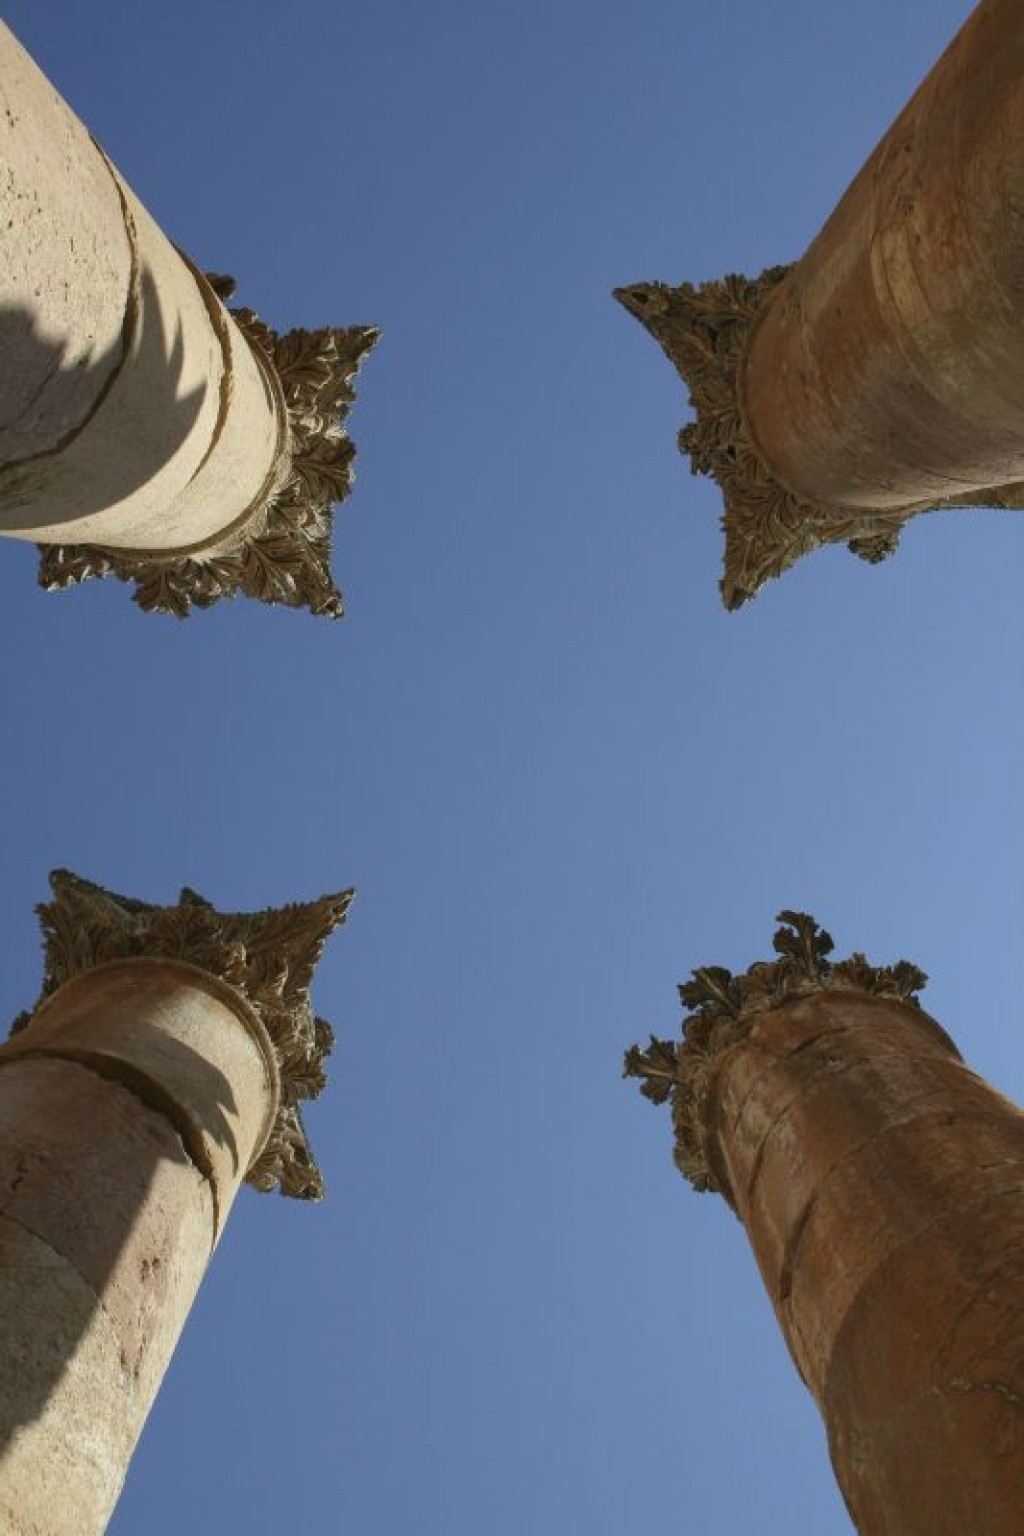 Pillars of the Temple of Artemis